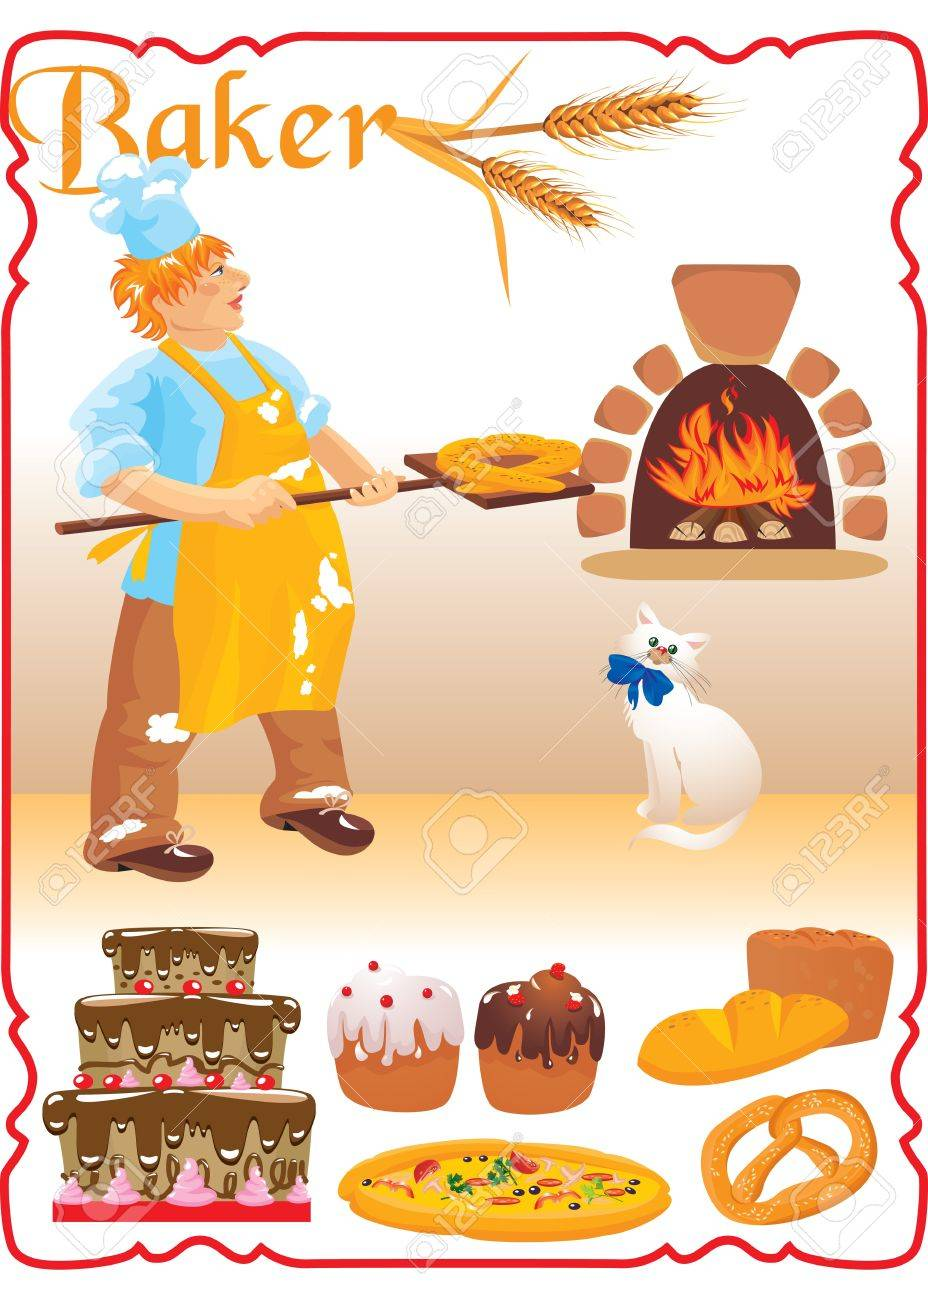 young red haired baker with white cat next to fire place and set of different bakery - bread, biscuit, cake, pizza, Easter cake. Stock Vector - 11142131